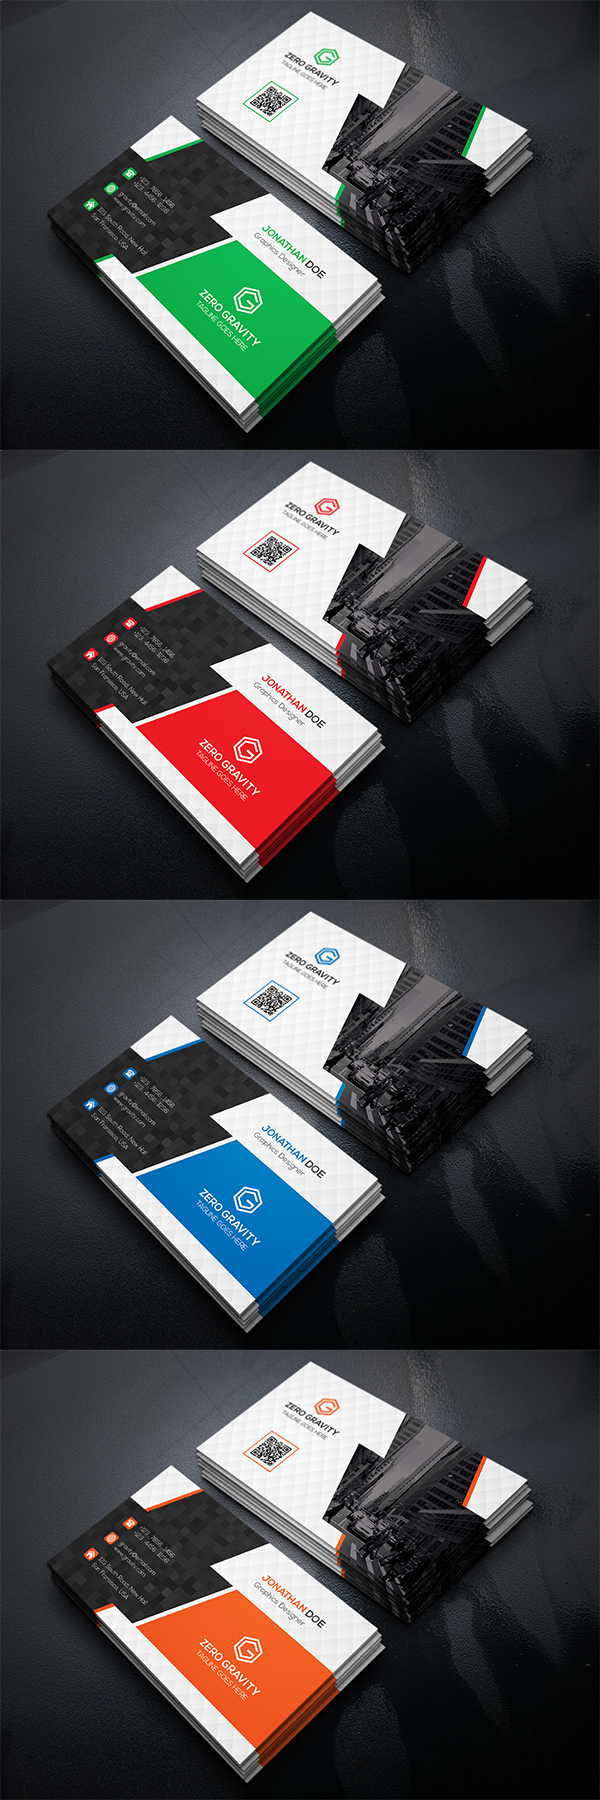 07 Business Card Design